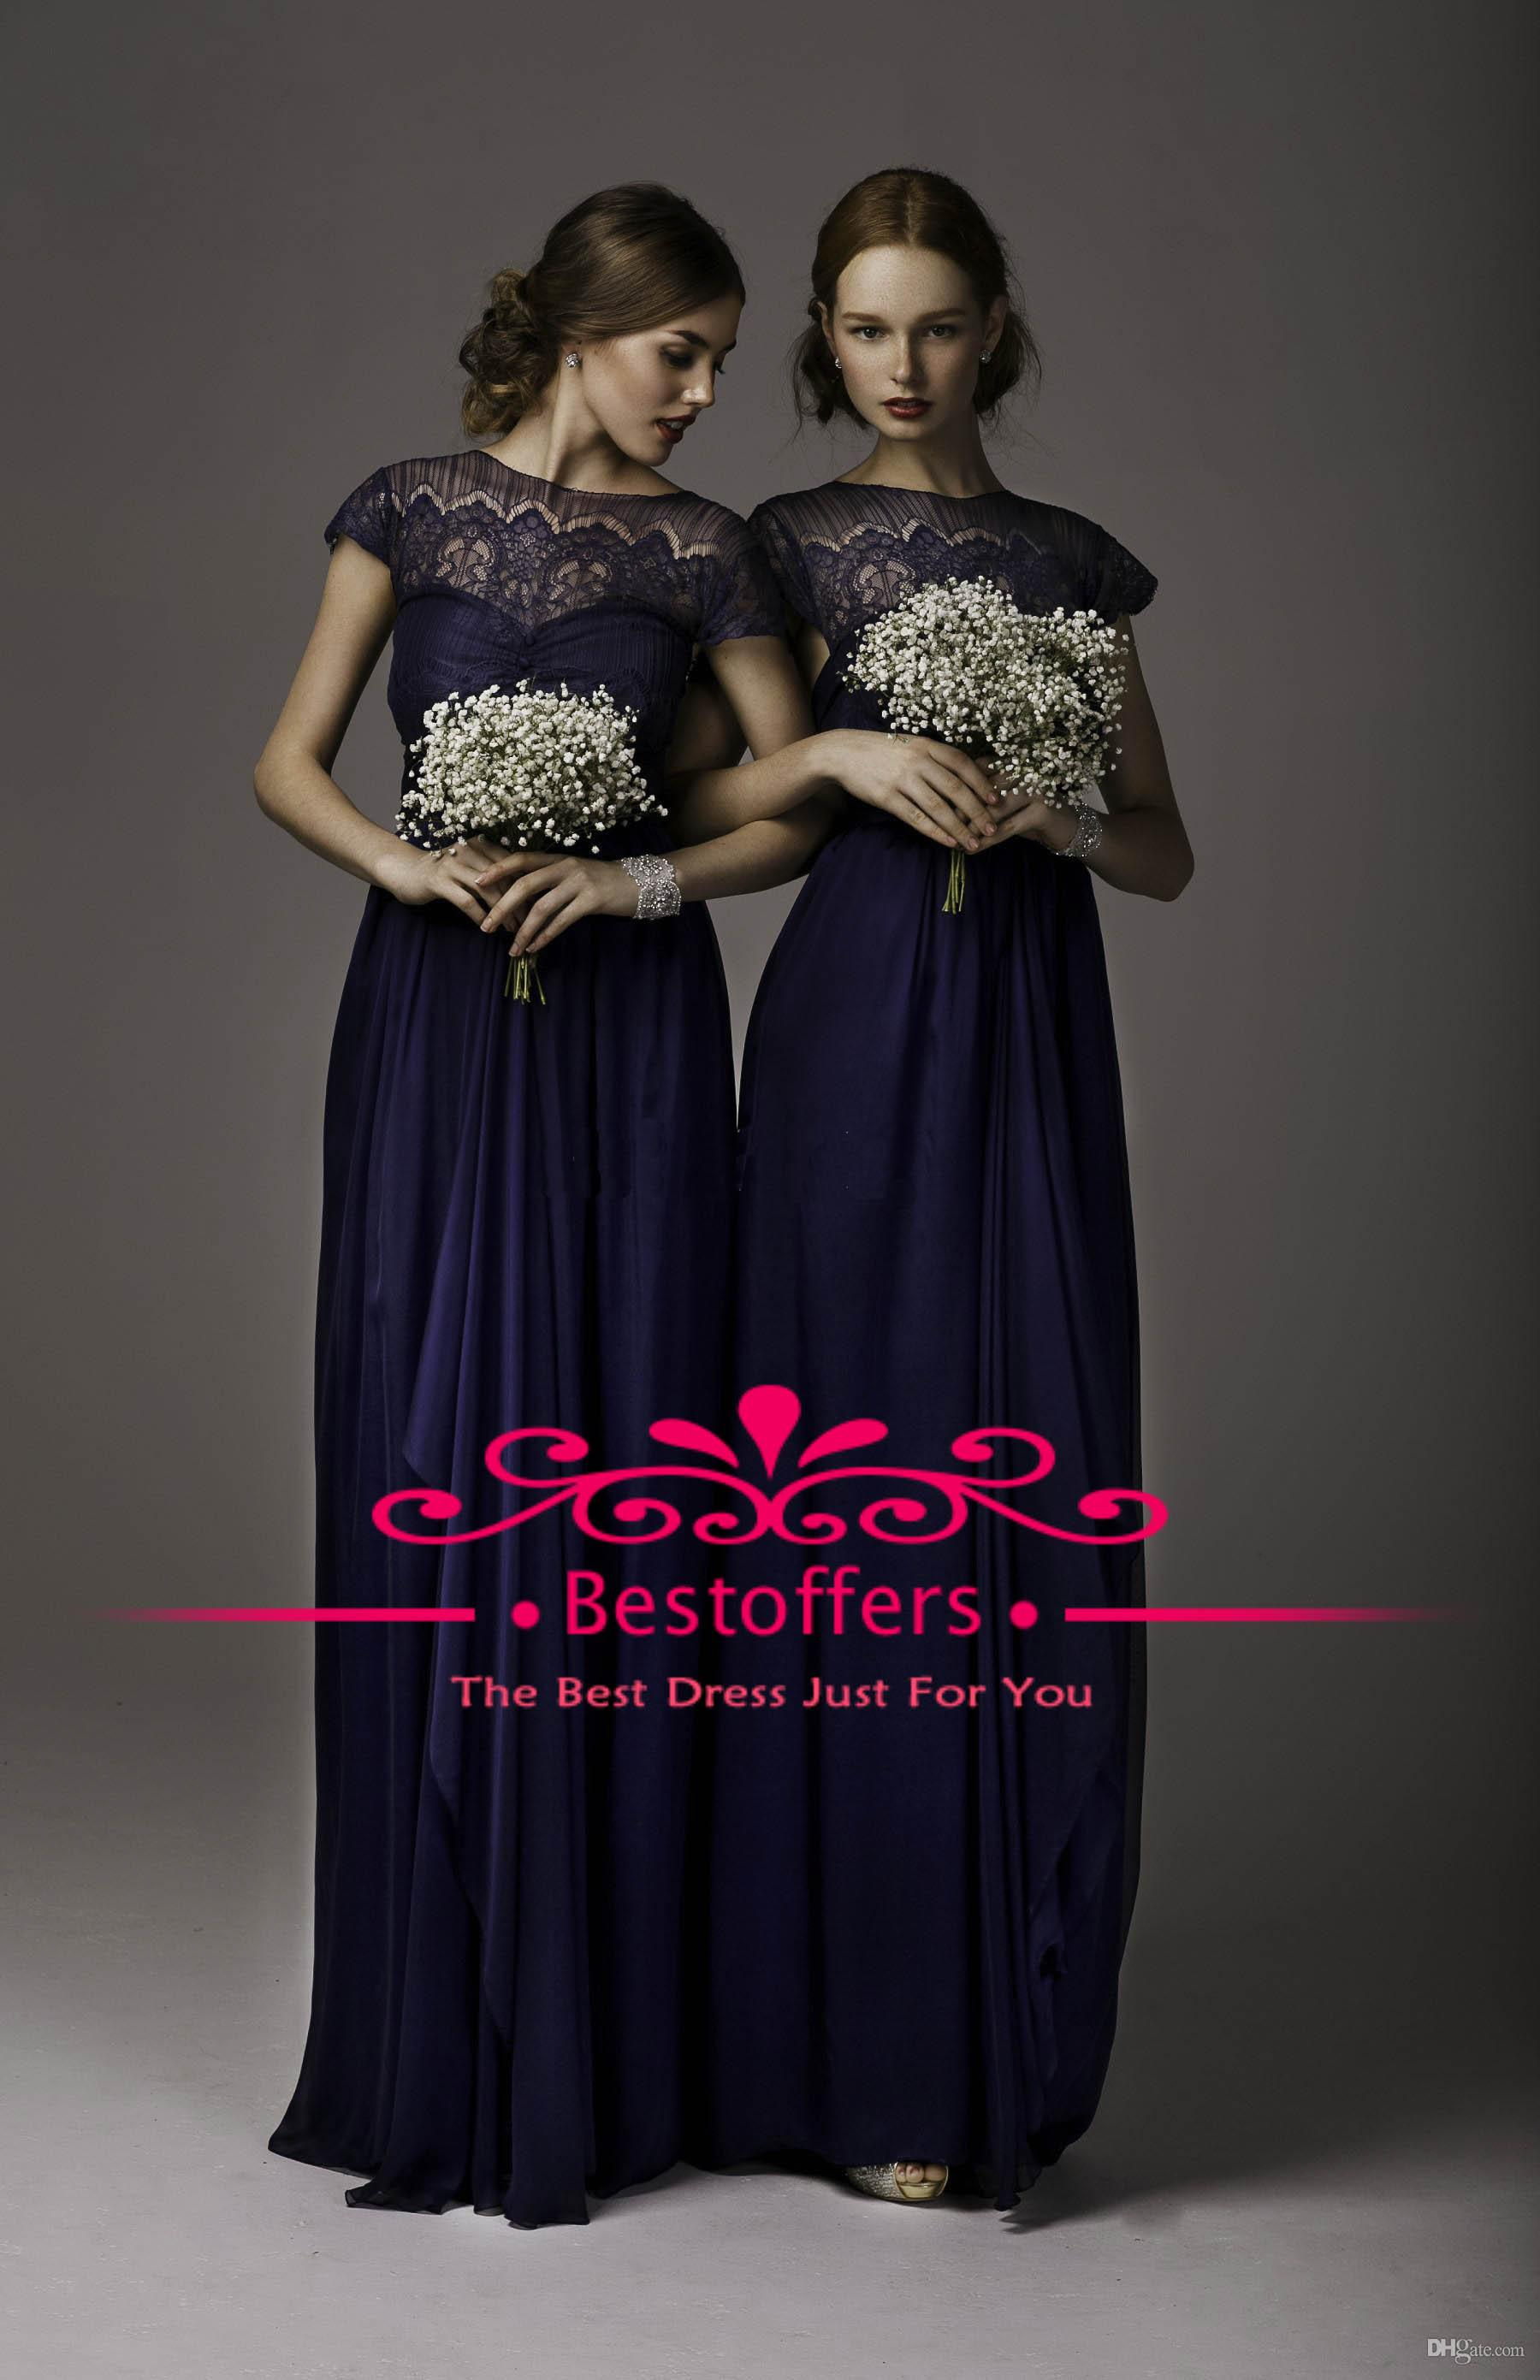 Elegant long formal dresses for women 2016 lace off shoulder mermaid dress size chart ombrellifo Image collections